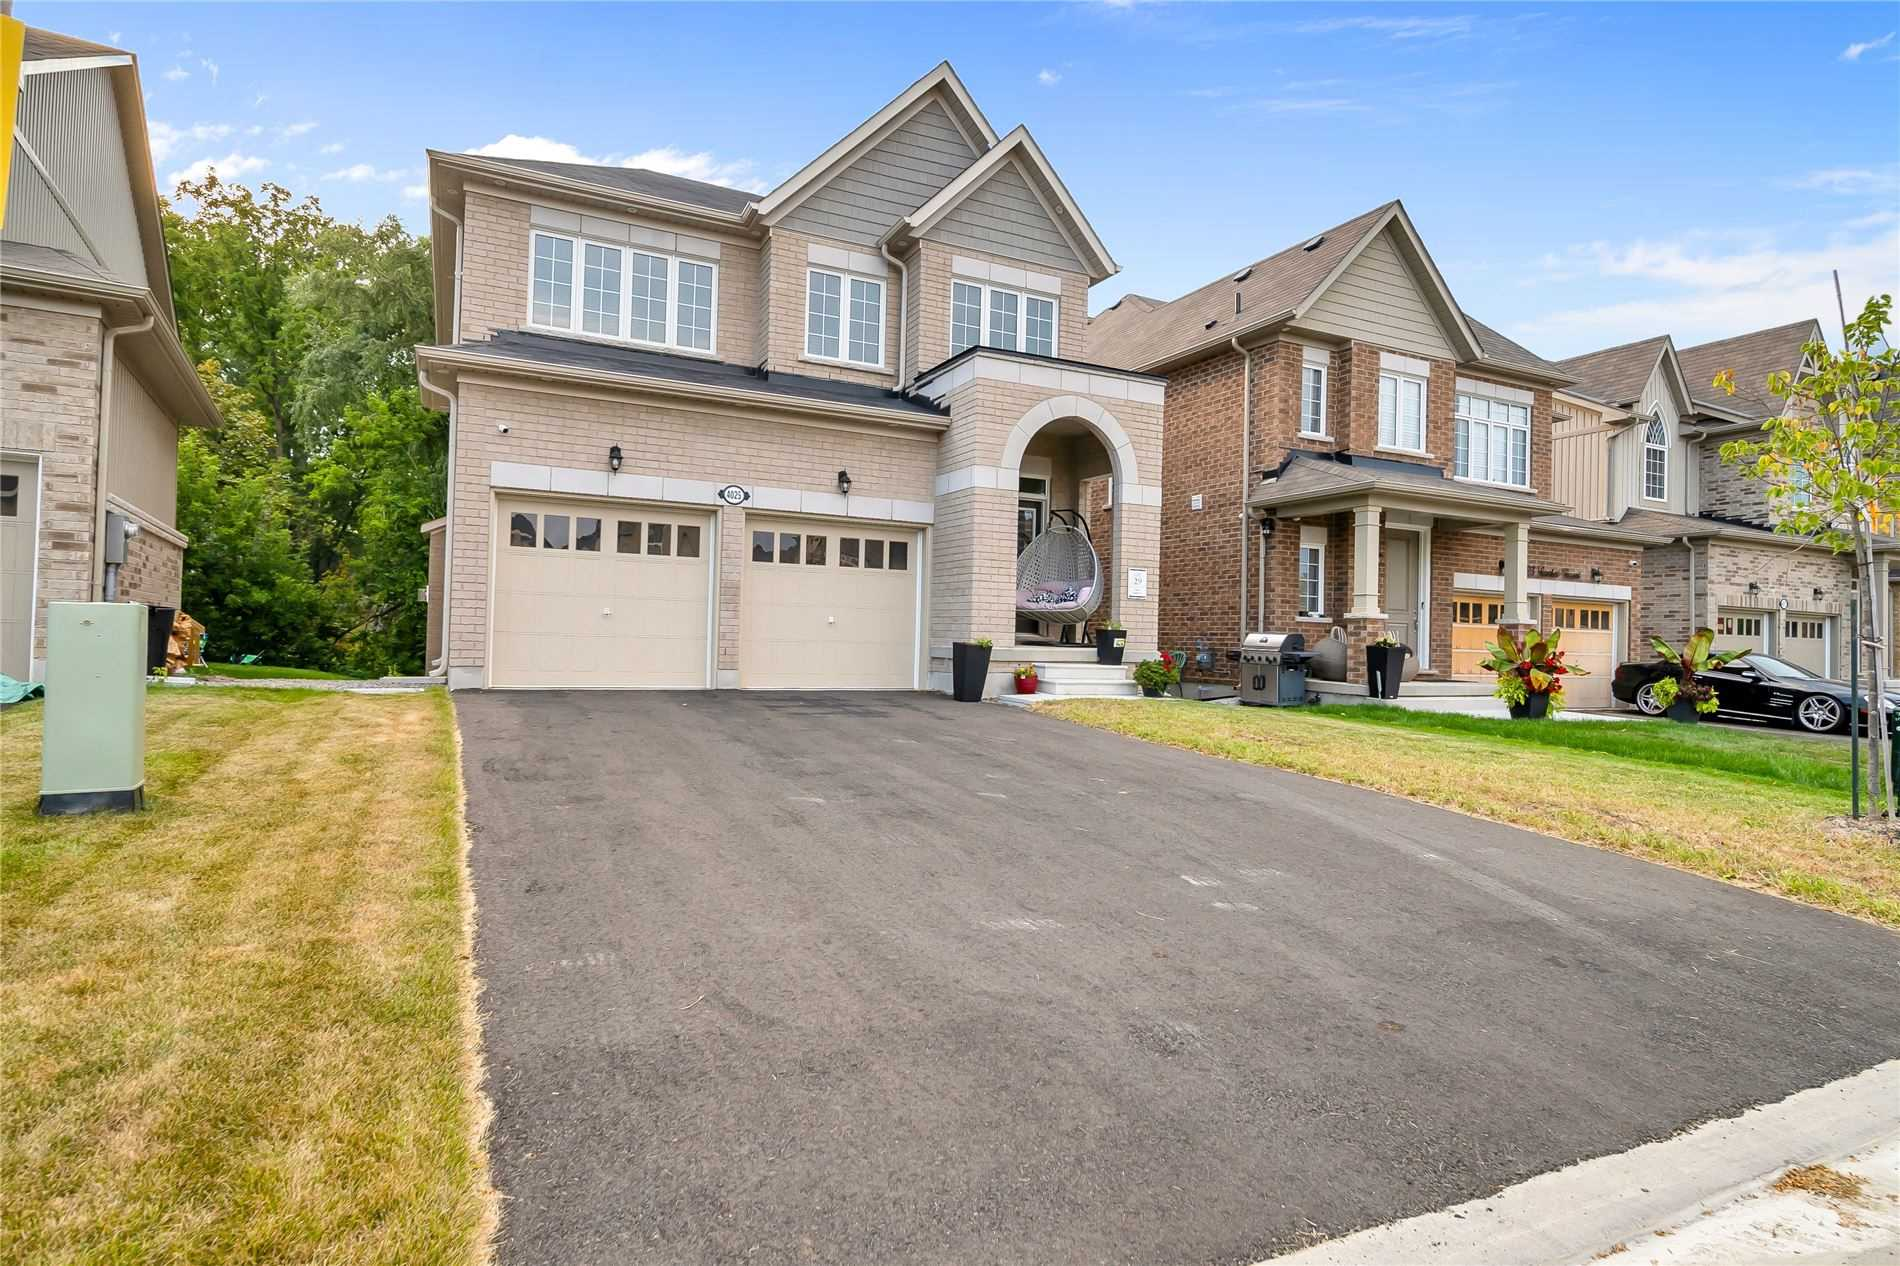 Stunning Detached 2499 Sq Ft(As/ Builder) On Crt Location. Newly Built 4 Bedrooms/4Washrooms Cachet Hill Homes With Full Of Natural Sunlight. D/Door Entry,9Ft Ceiling On Main, Kitchen With Granite Counter & High-Tech Appliance, In/Out Pot Lights, C/ Vacuum, Bbq Gas Line, Laundry On Main, Extra Large Windows In Basement, All Bedrooms Attached With Washrooms, Designer Blinds, Spectacular View Of Backyard/Little Stream/Tress.30 Minutes Drive To Niagara.